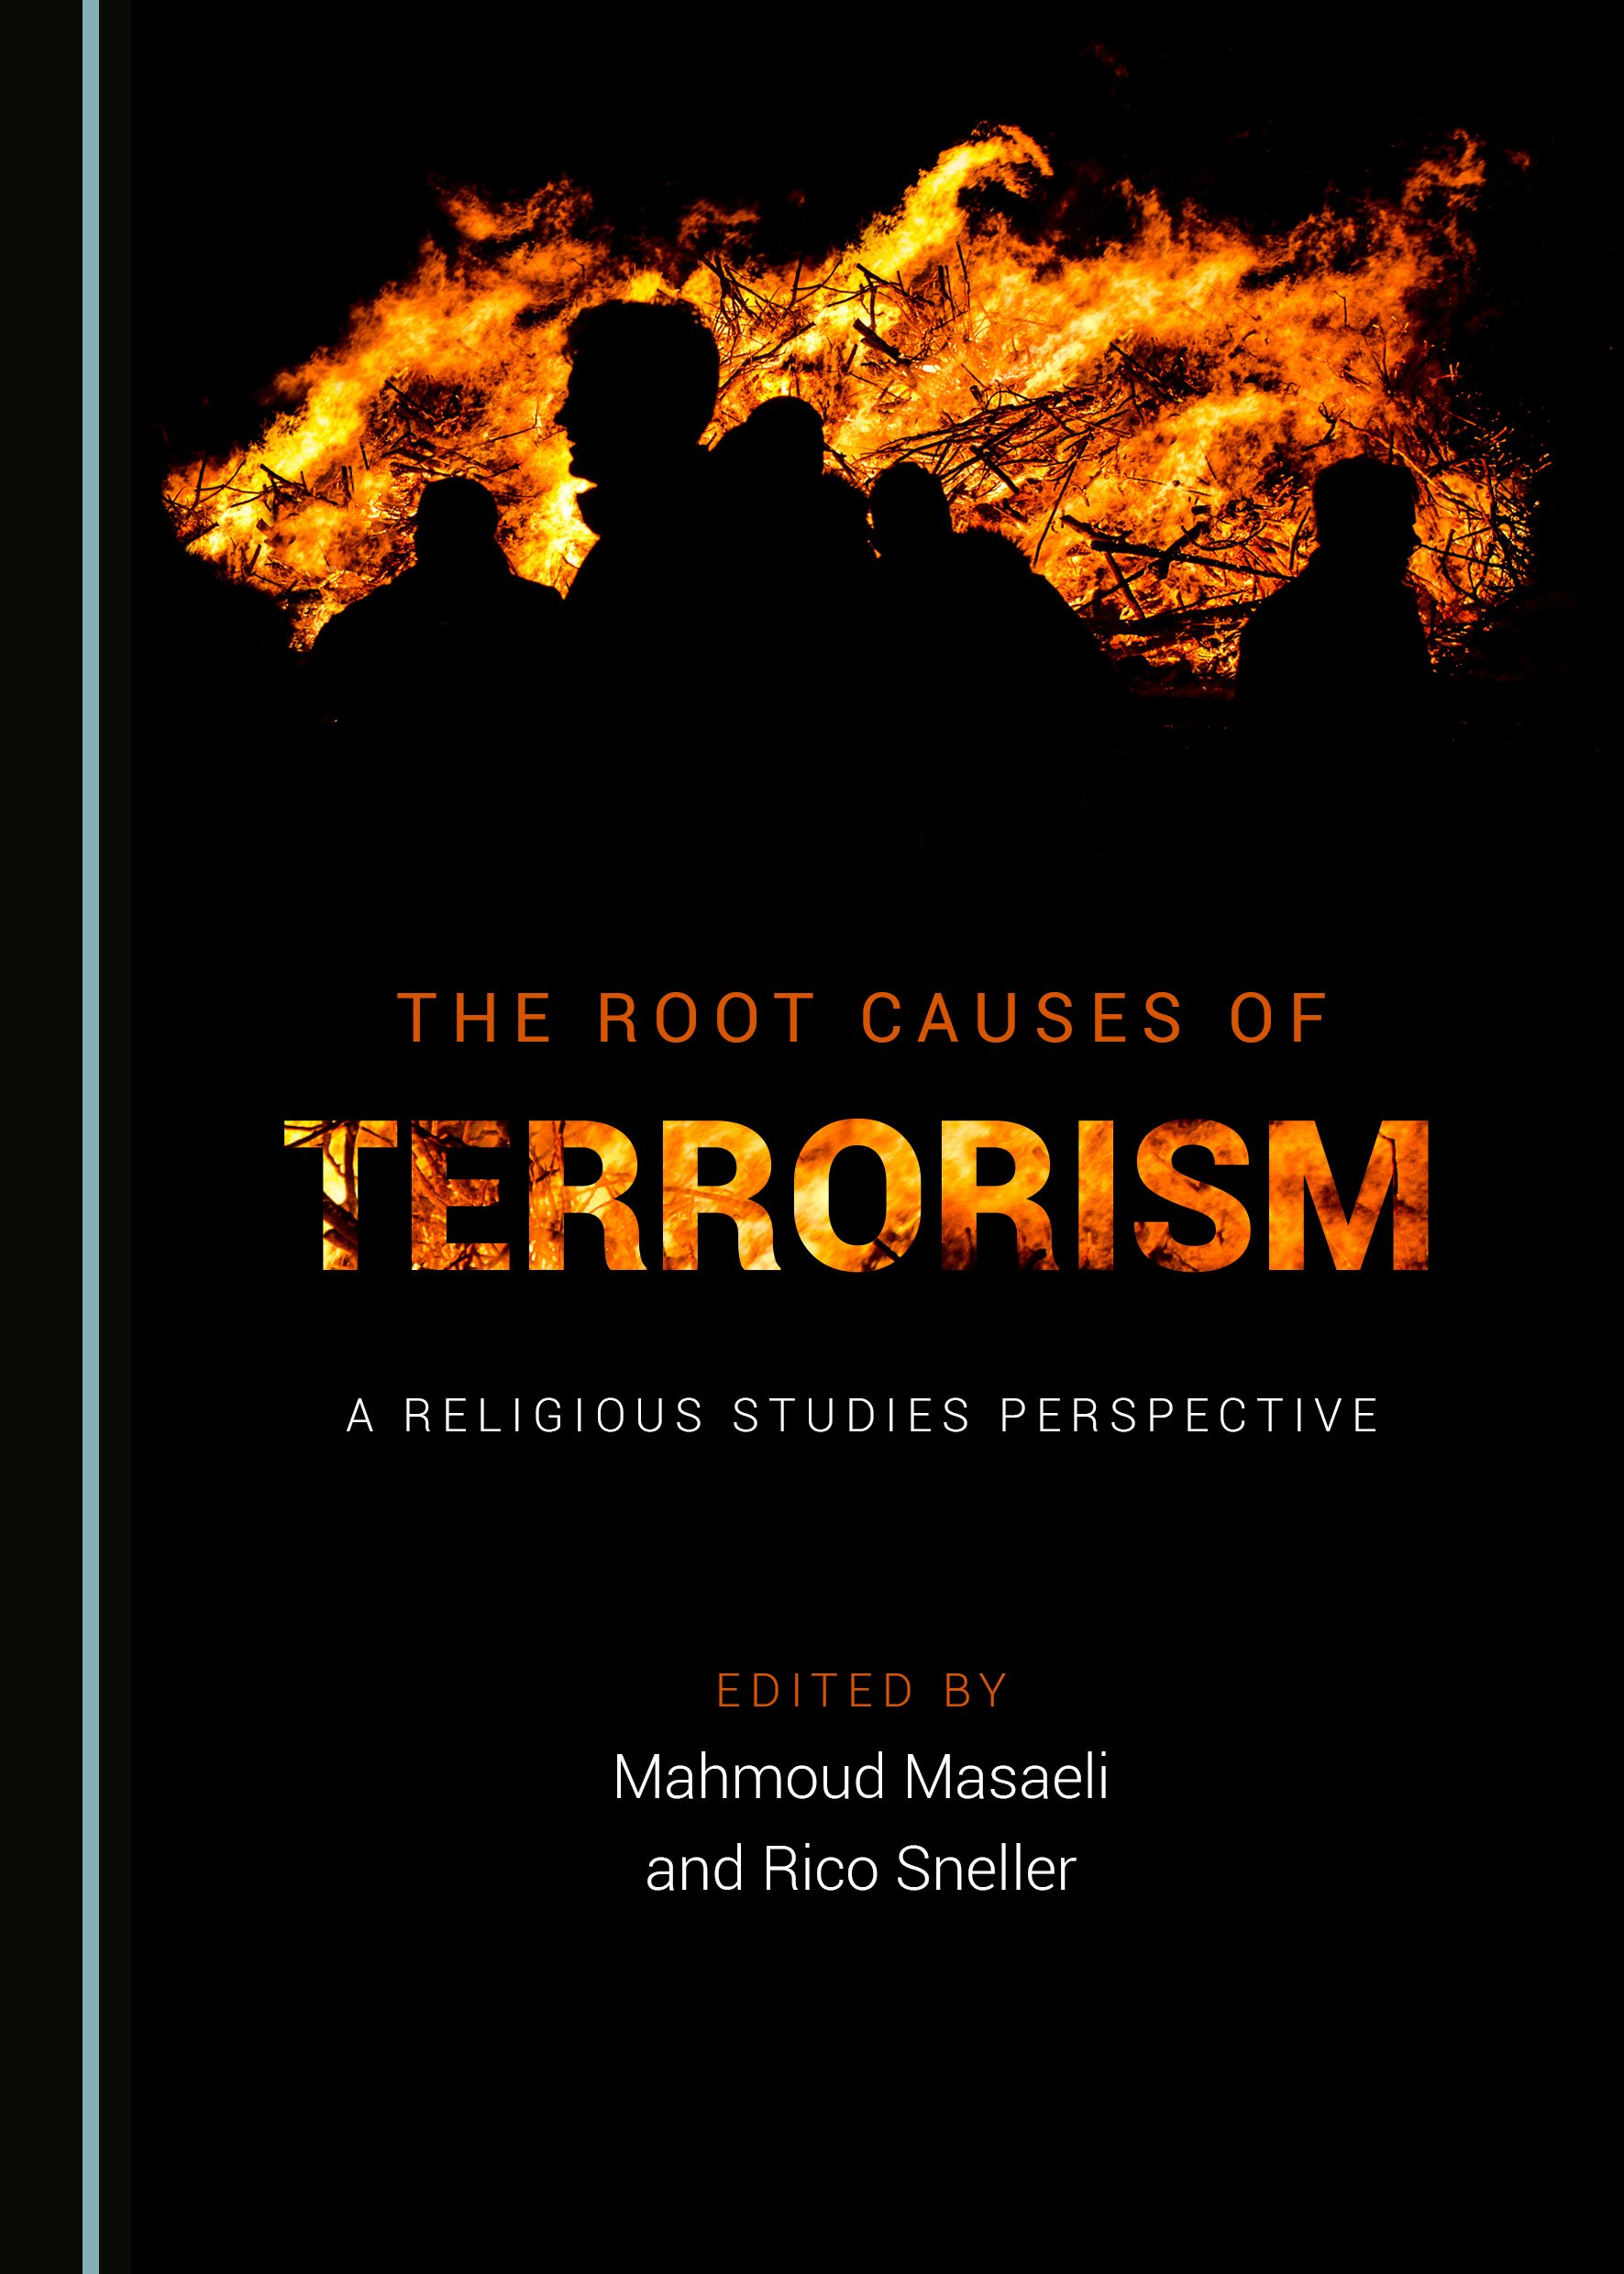 The Root Causes of Terrorism: A Religious Studies Perspective